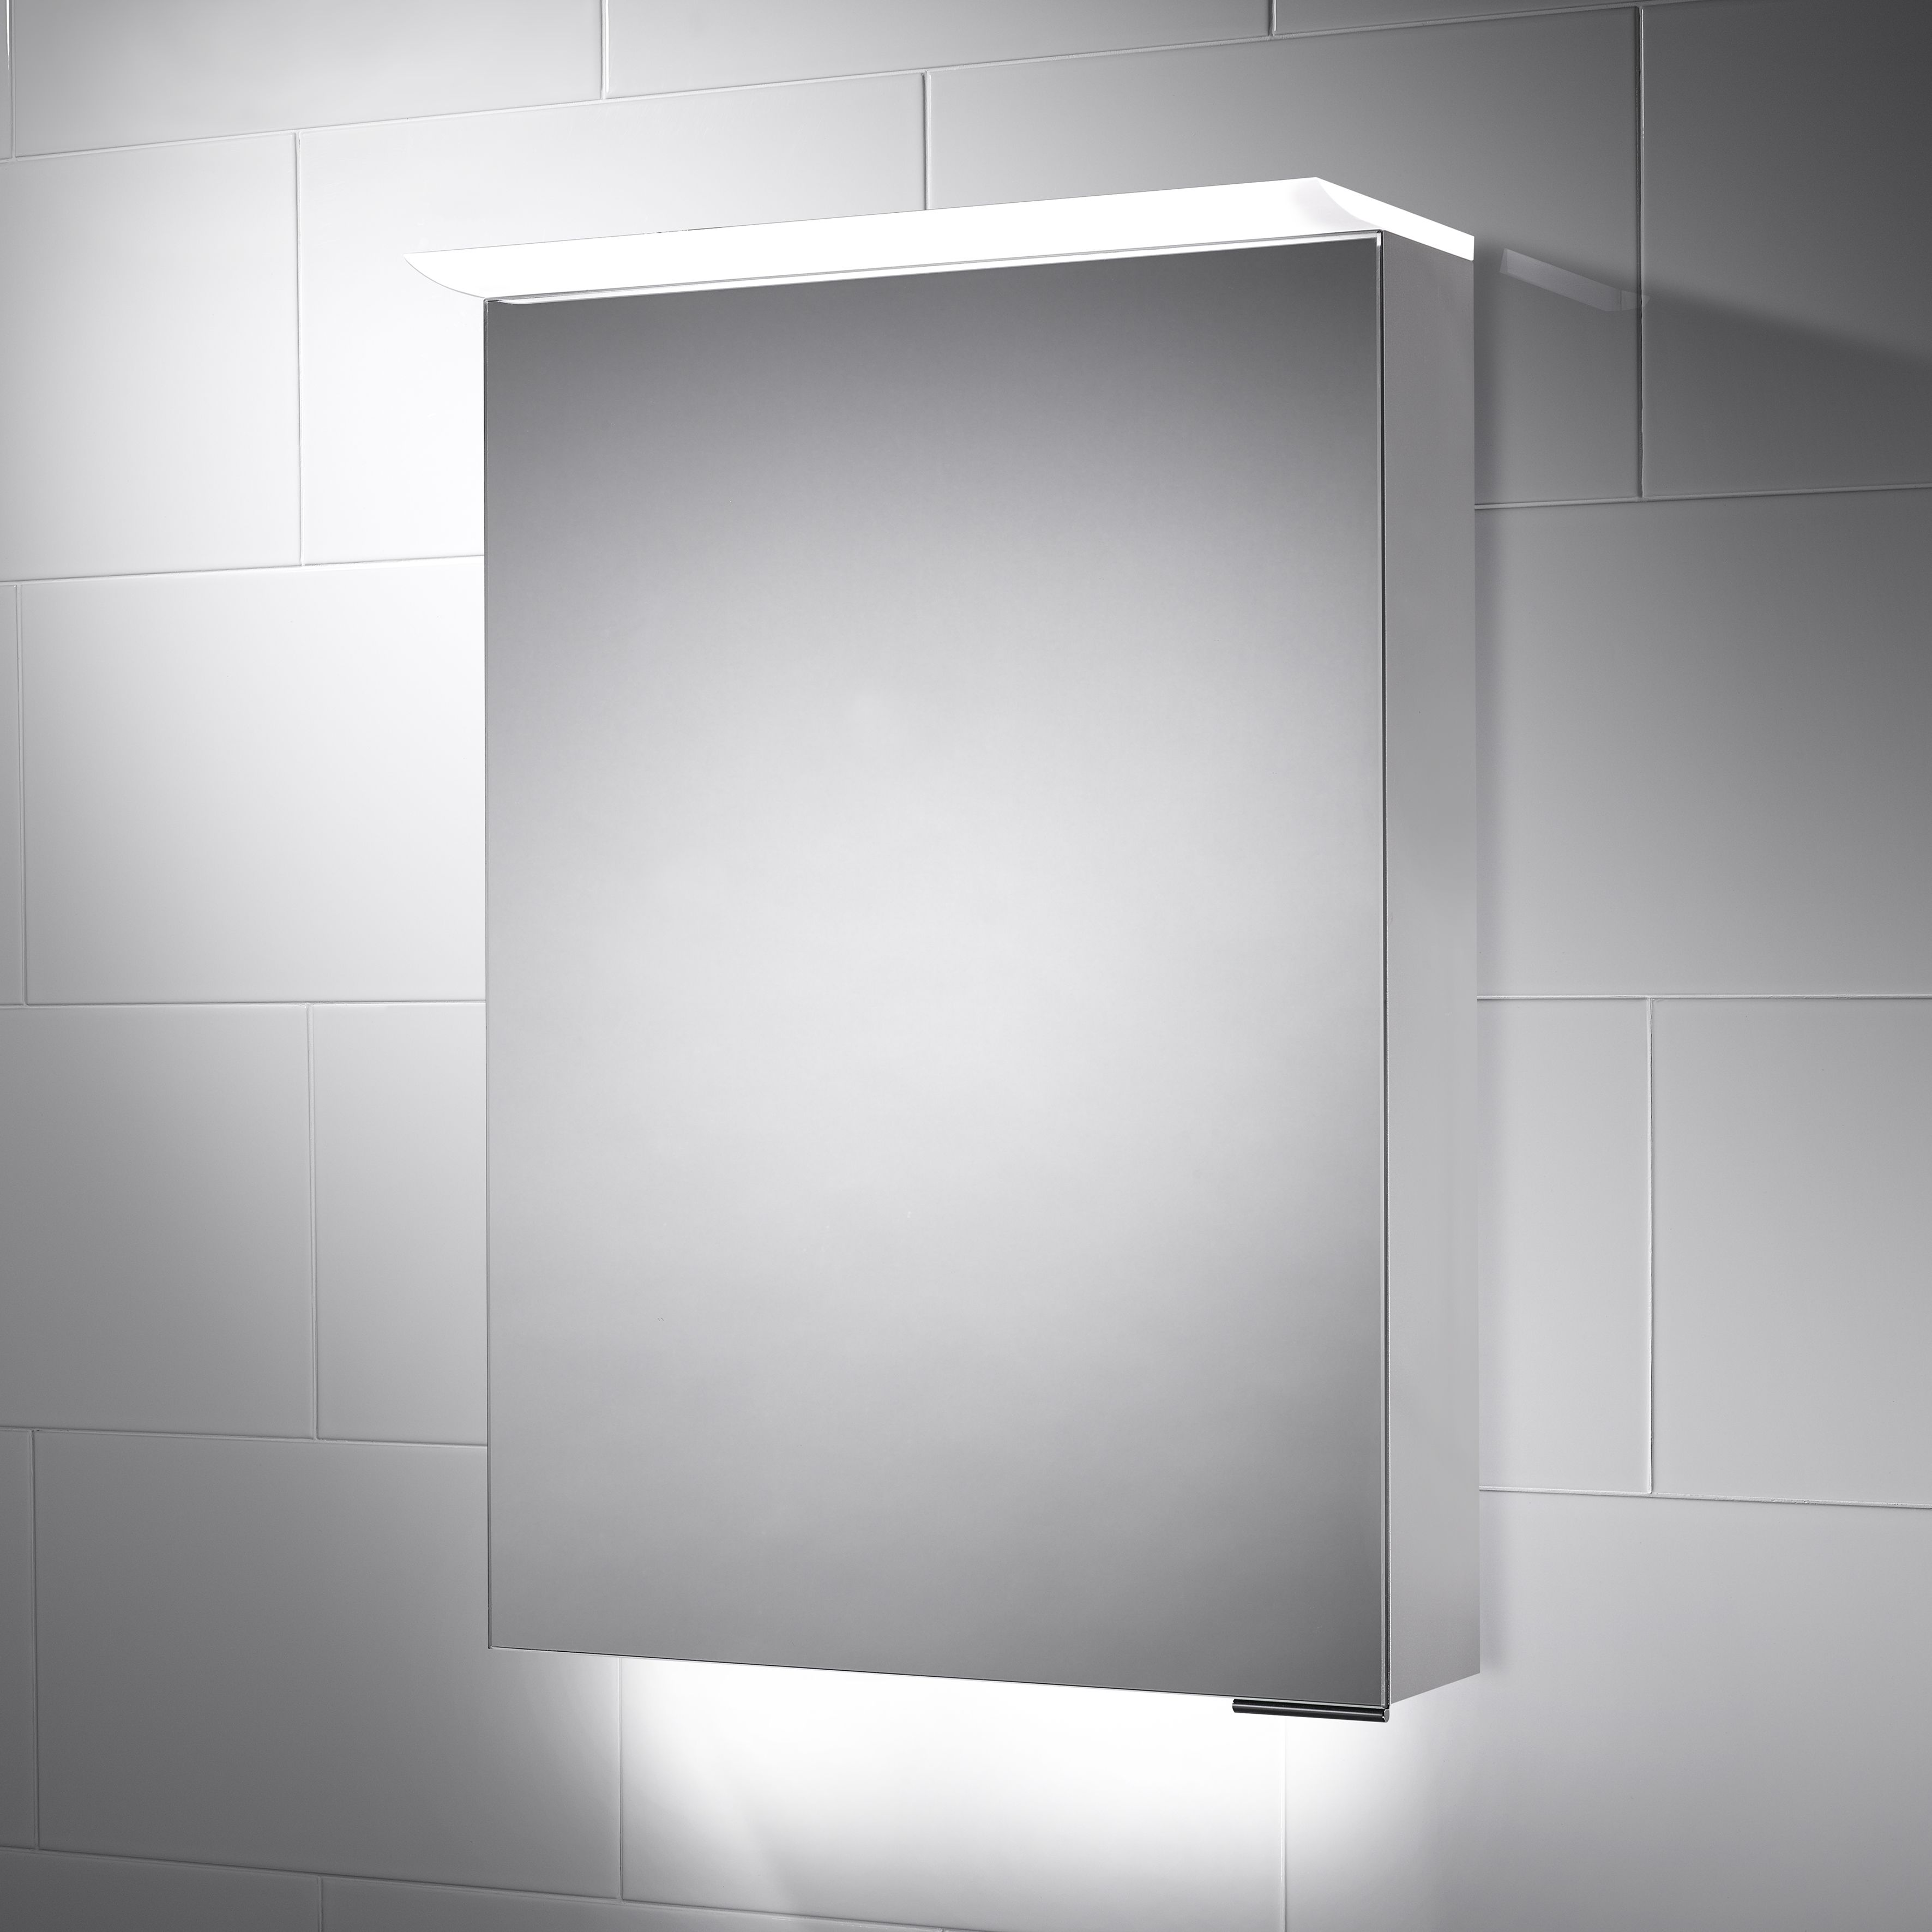 Richmond Led Illuminated Bathroom Cabinet Mirror With Shaver Socket 500 X 700mm Bathroom Mirror Cabinet Illuminated Bathroom Cabinets Led Mirror Bathroom